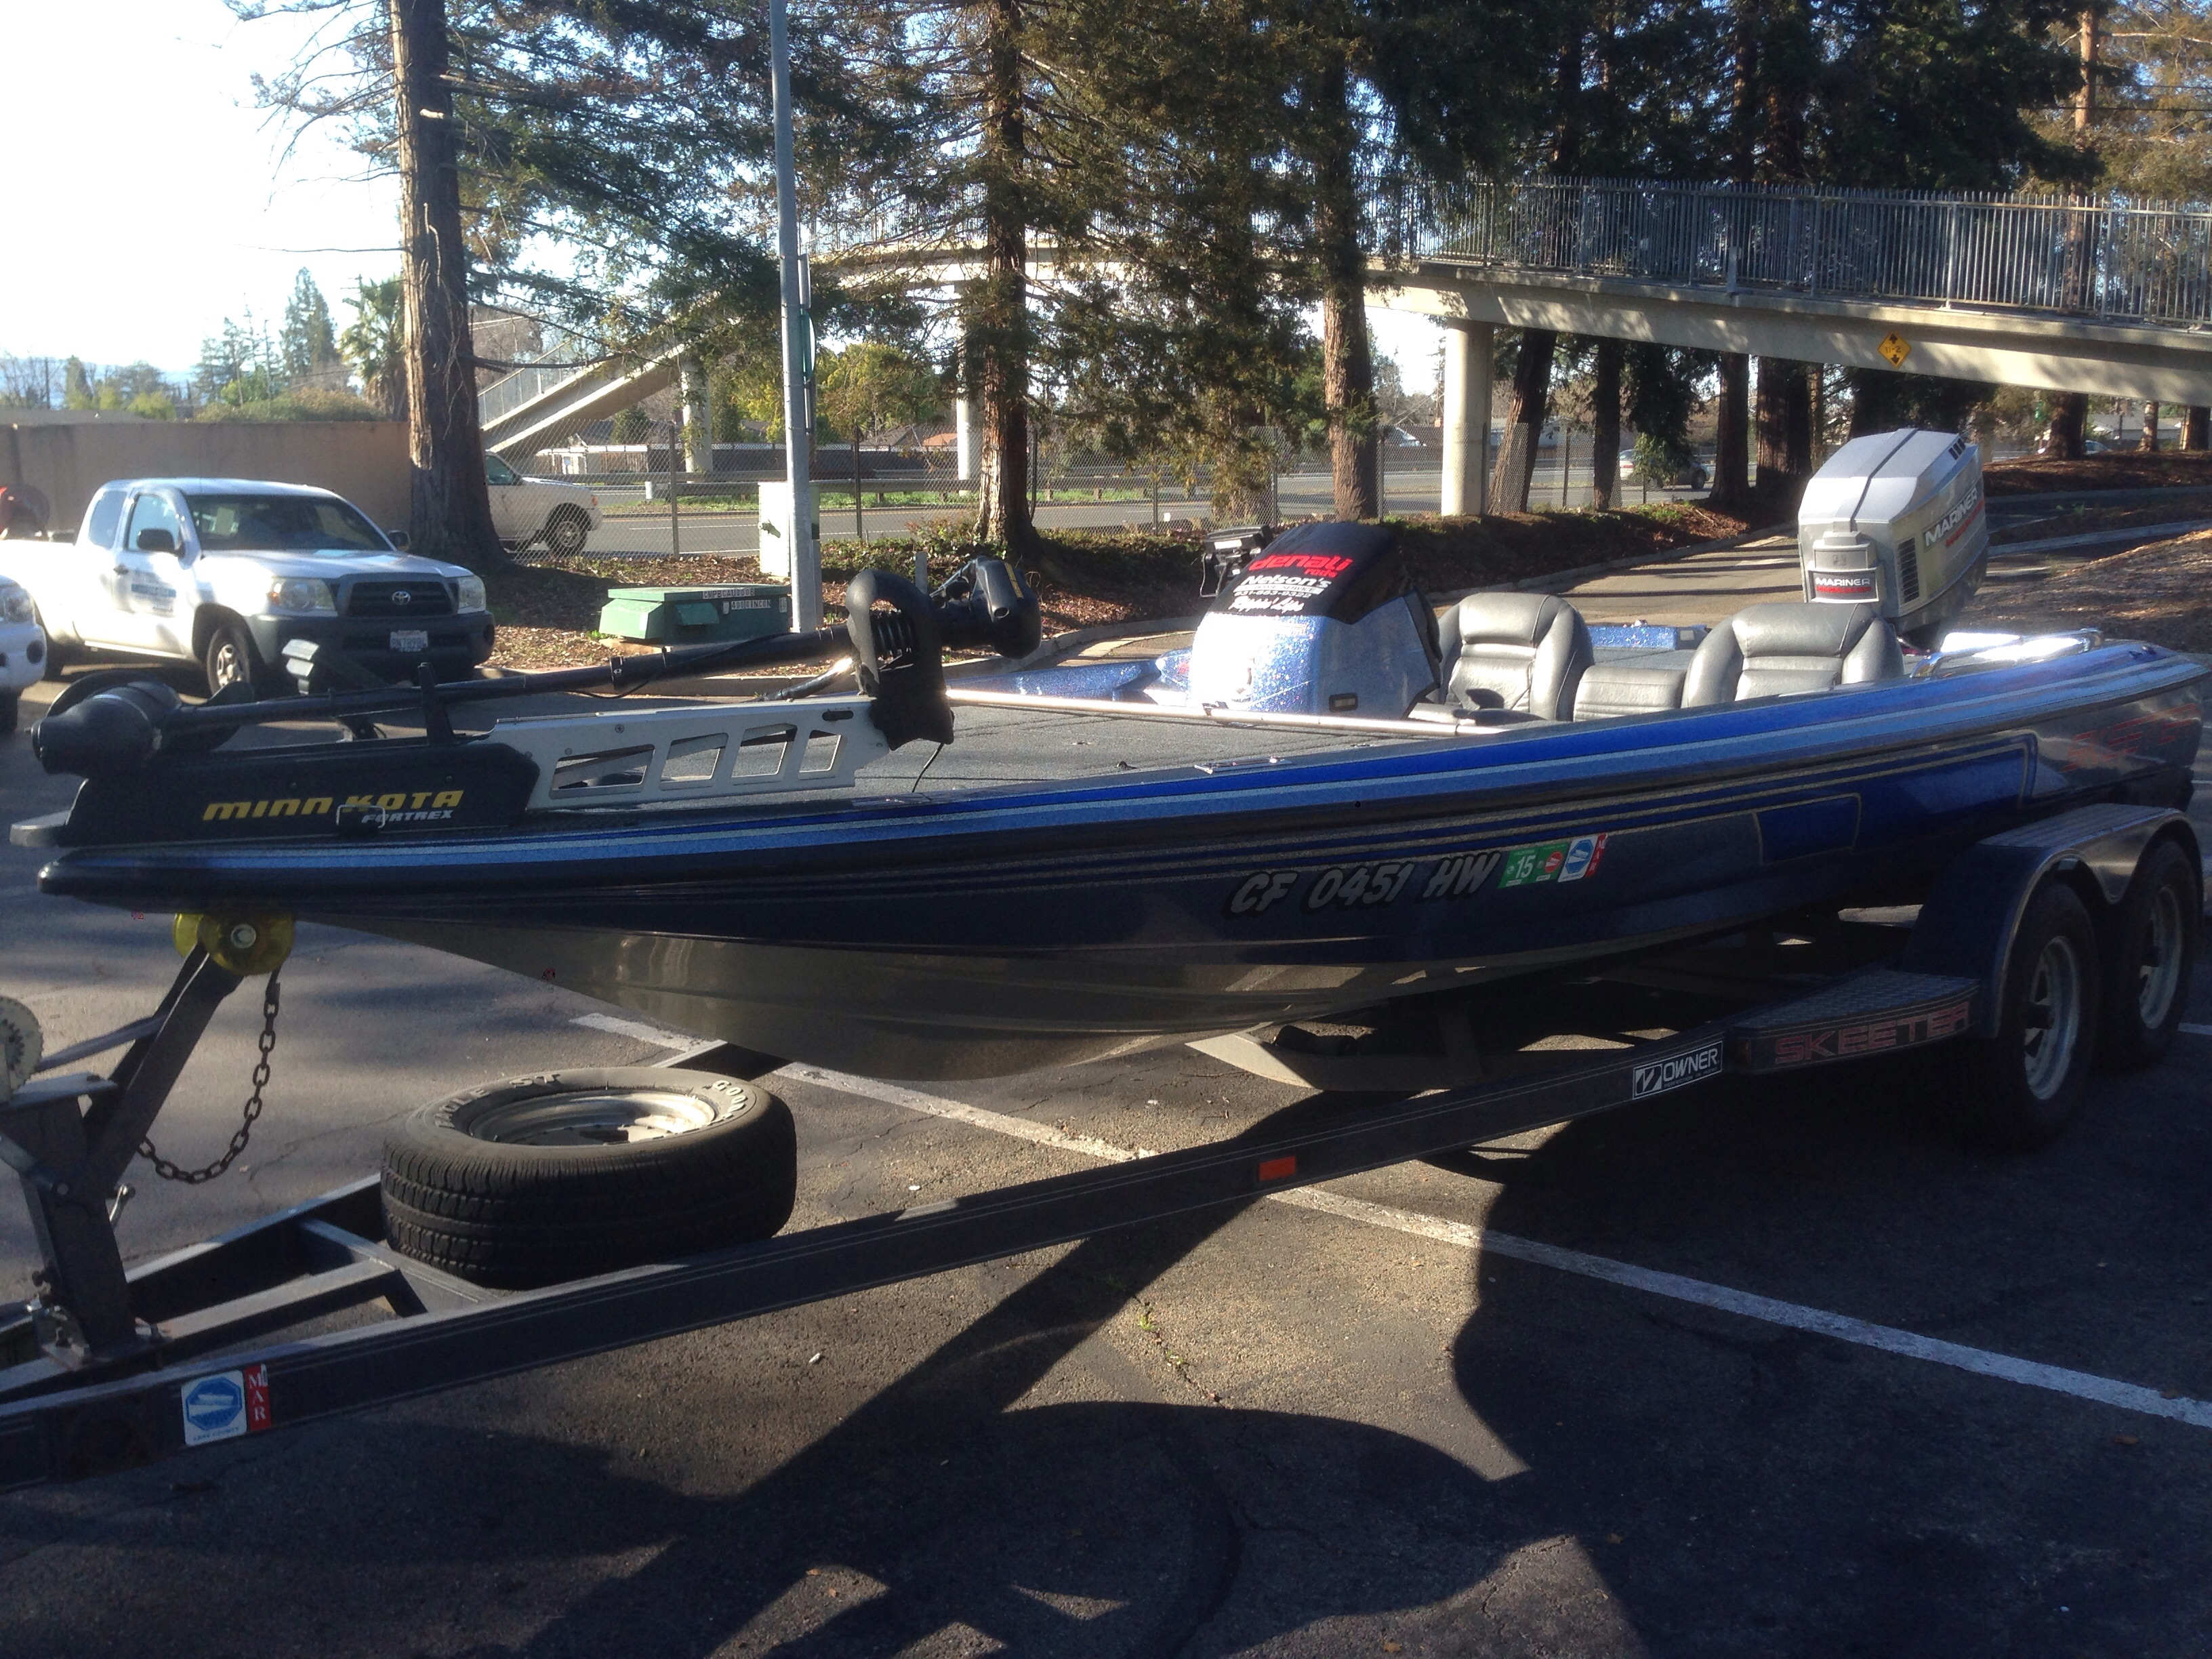 1996 Skeeter ZX200 w/ Mercury Mariner 200 EFI SOLD! - Bass